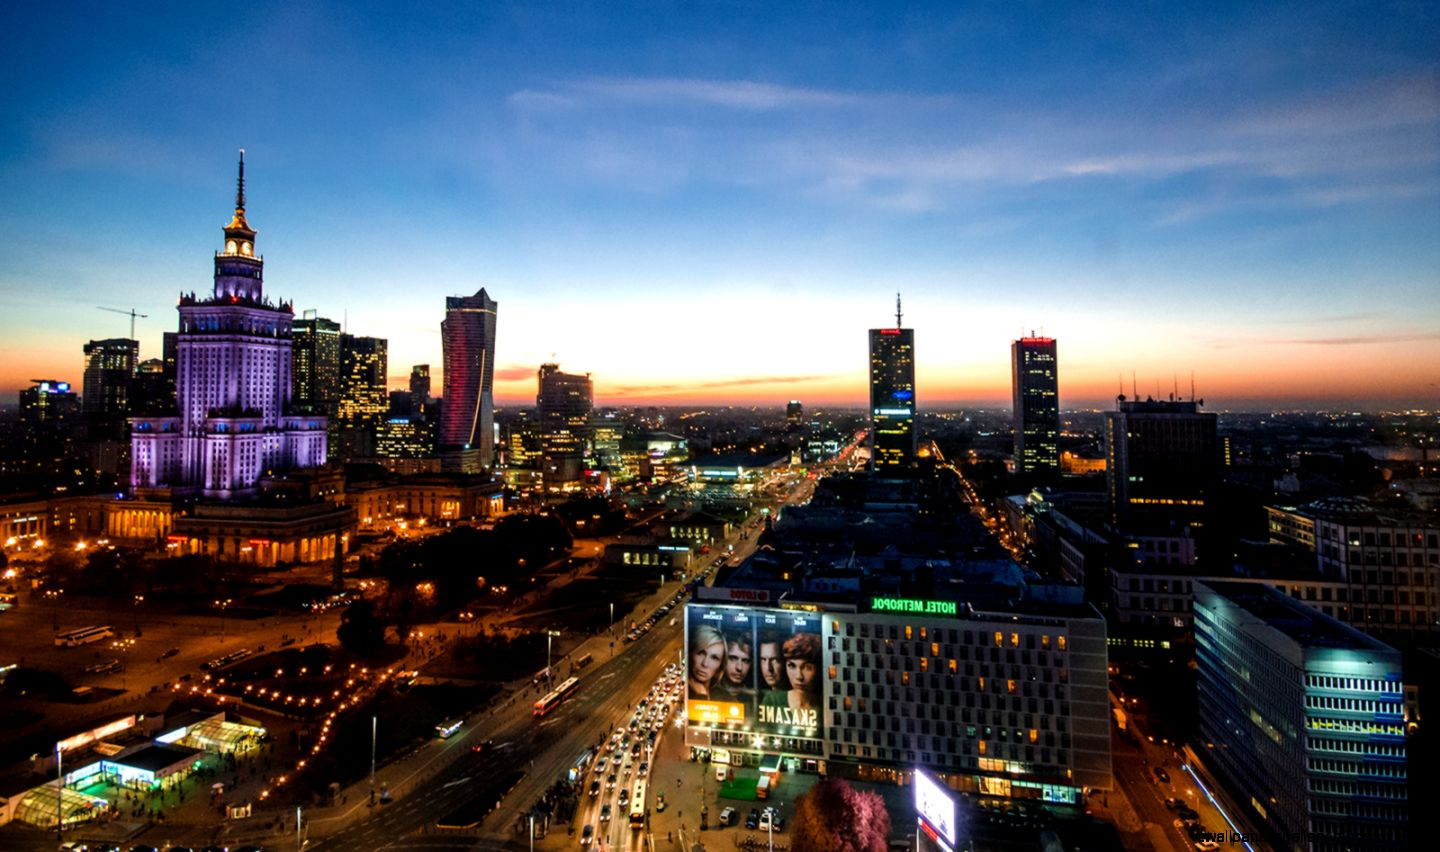 Warsaw At Night Free License CC0 Places Amazing City View